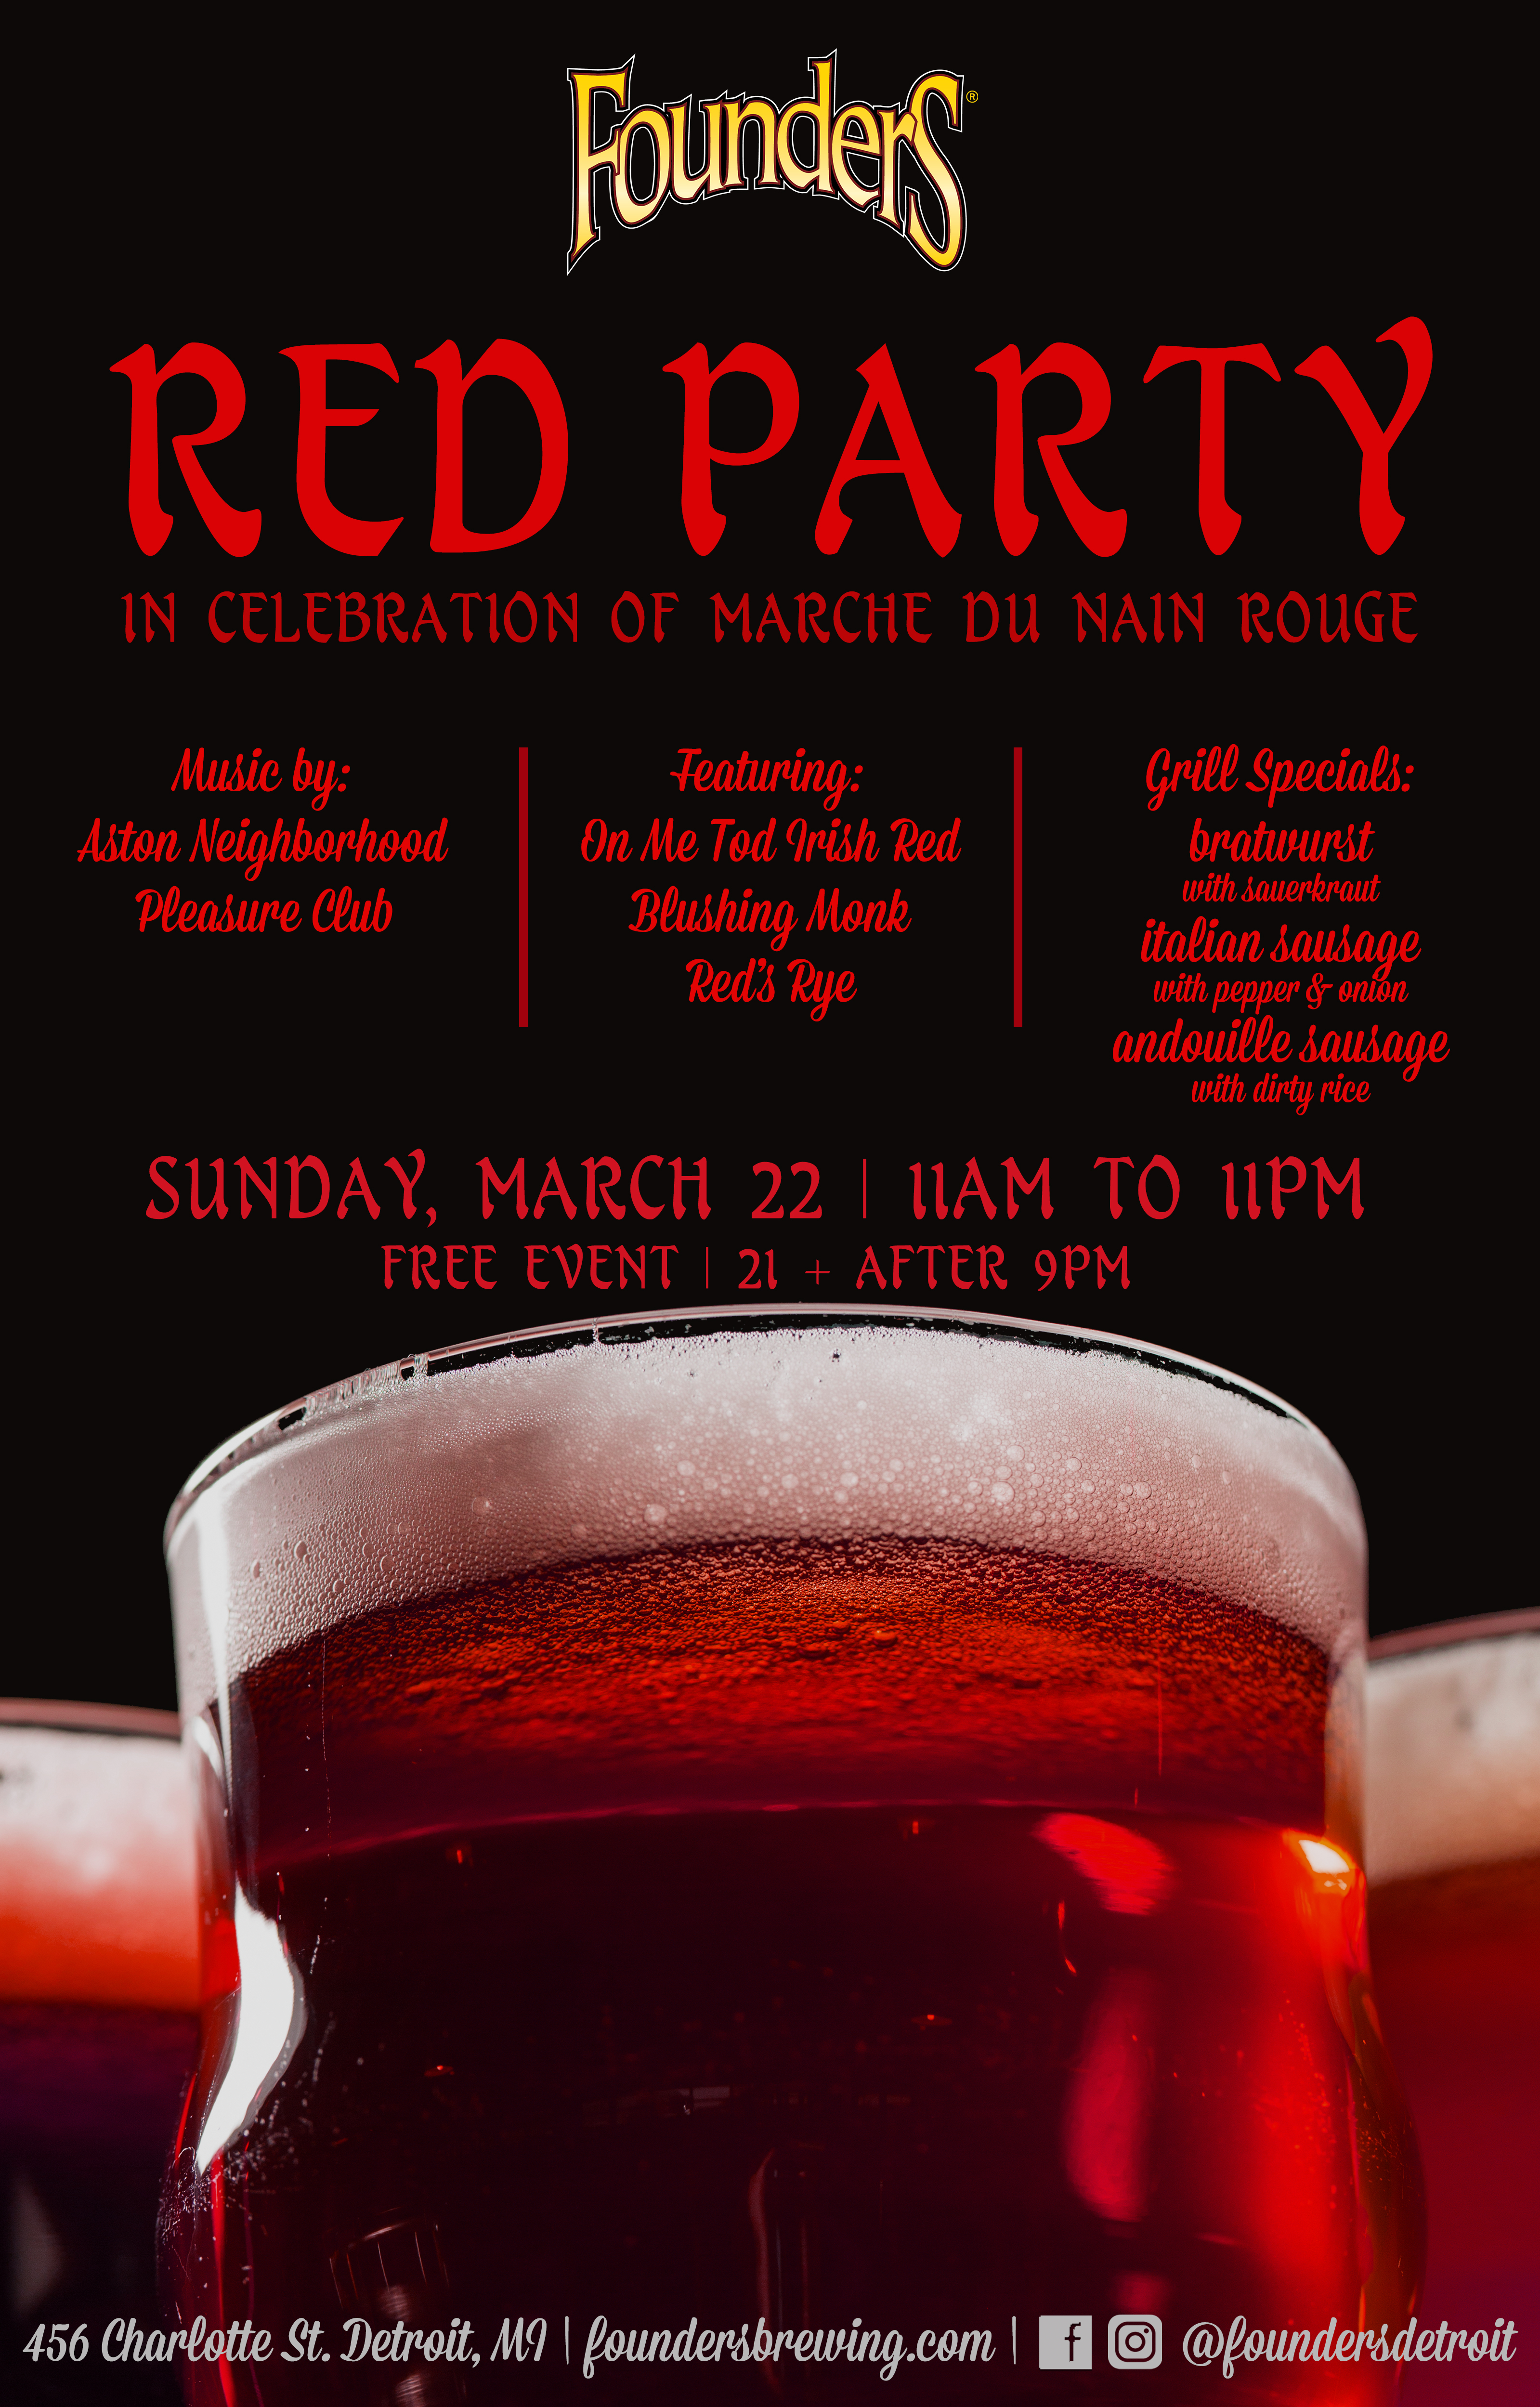 Red Party event poster hosted by Founders Brewing Co. in Detroit